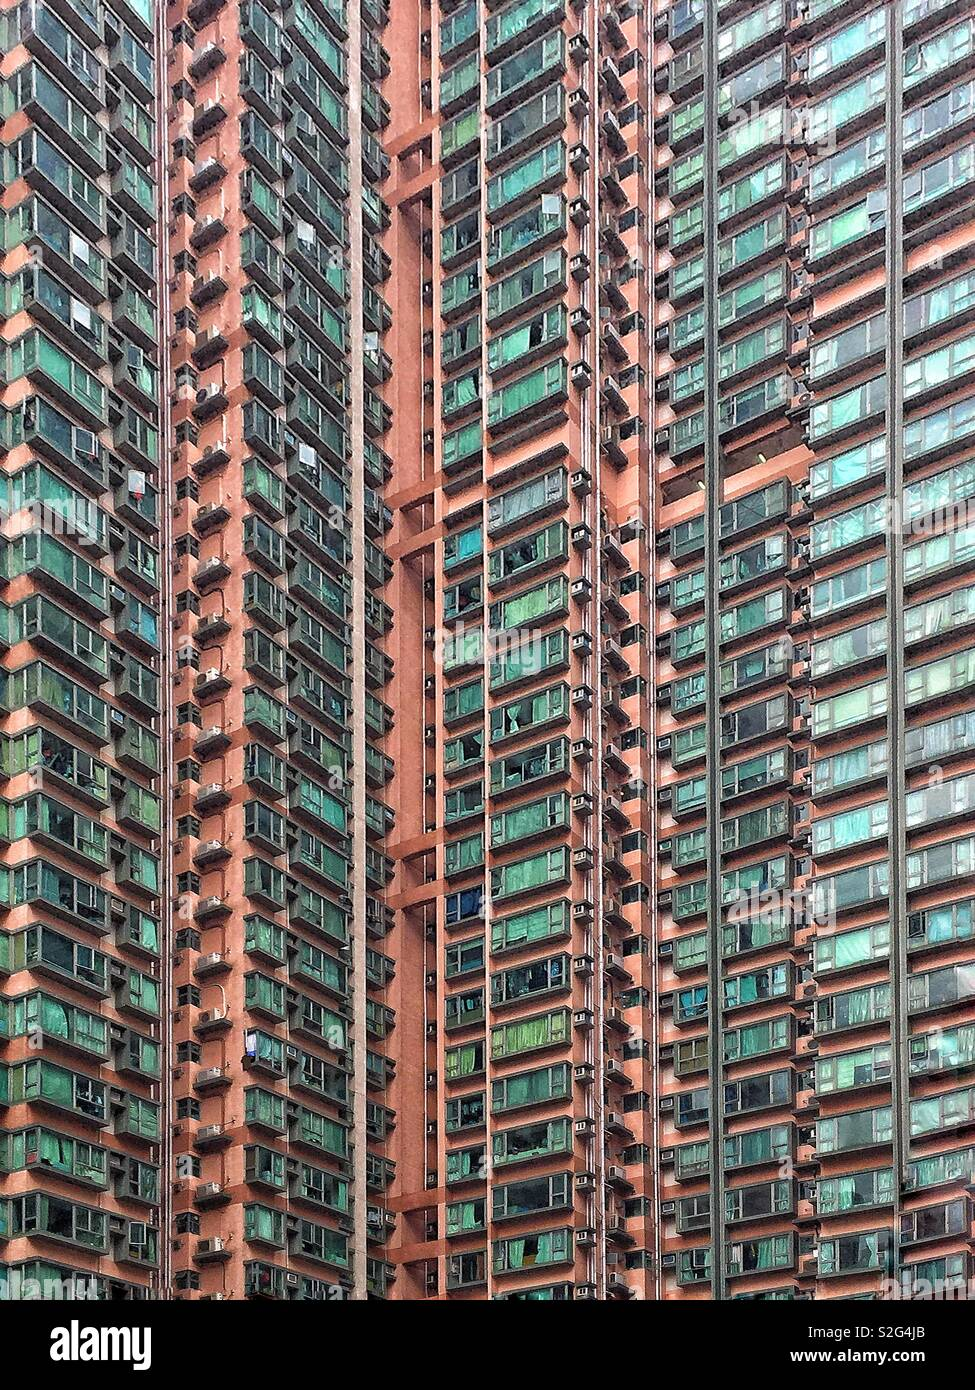 Hong Kong Building - Stock Image